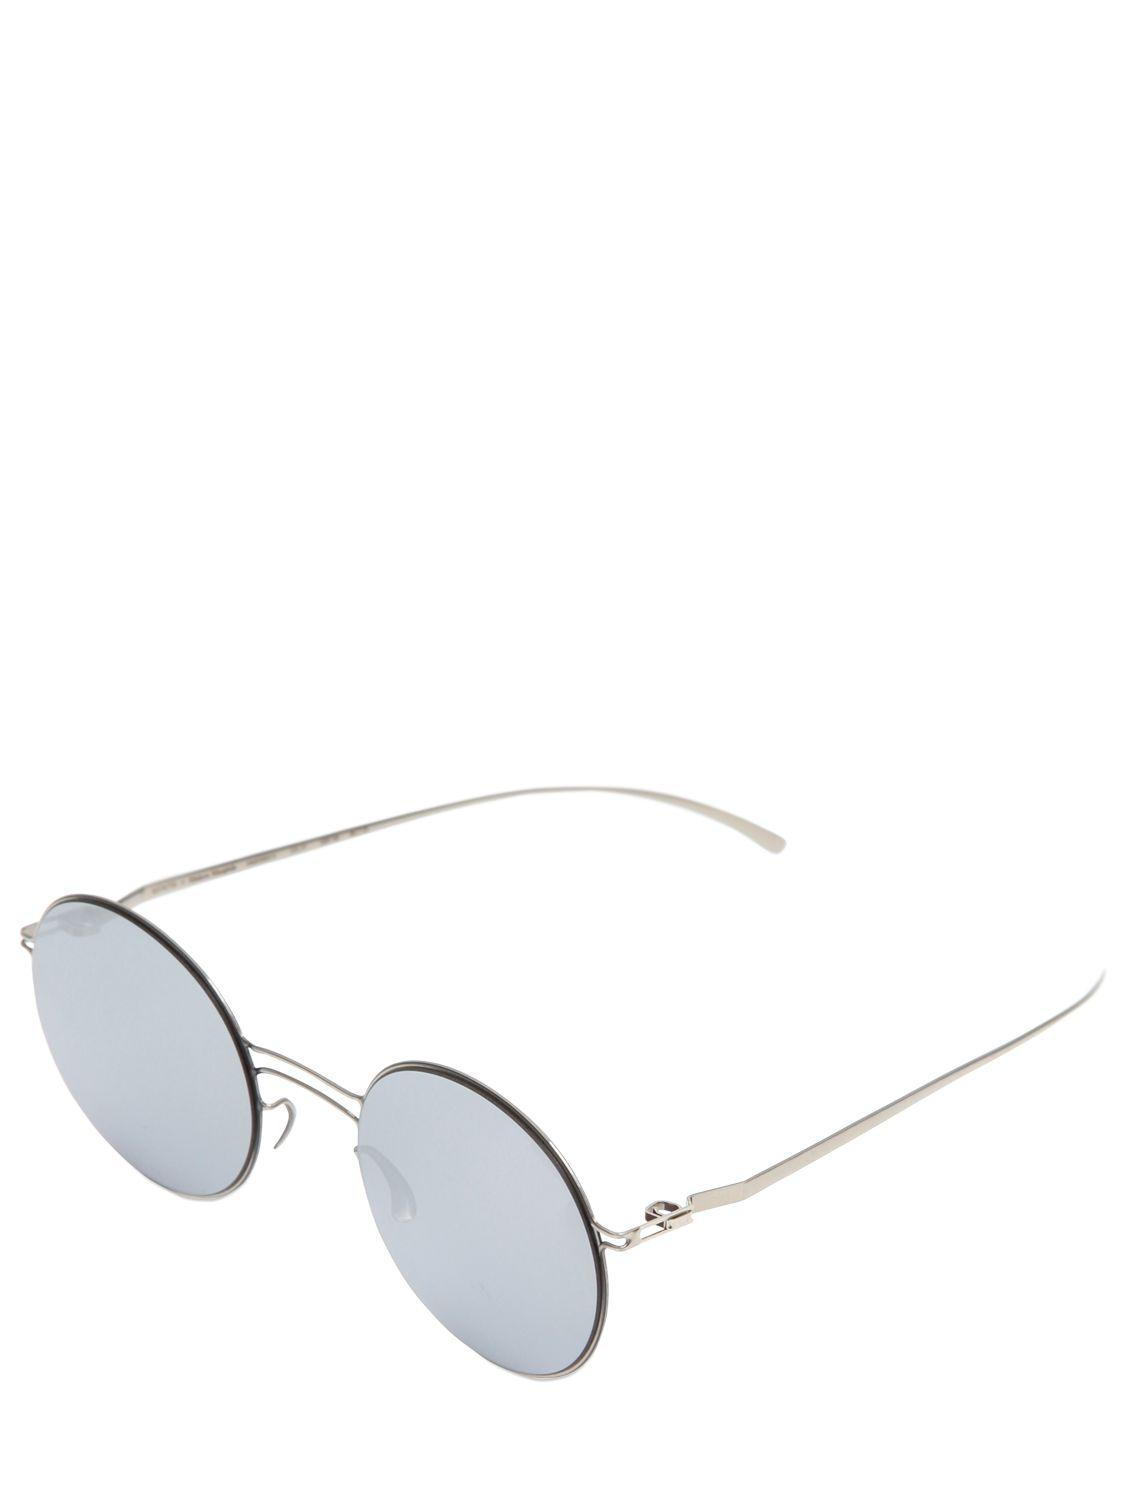 41c83591ac4 Mykita - Metallic Margiela Round Mirrored Sunglasses for Men - Lyst. View  fullscreen